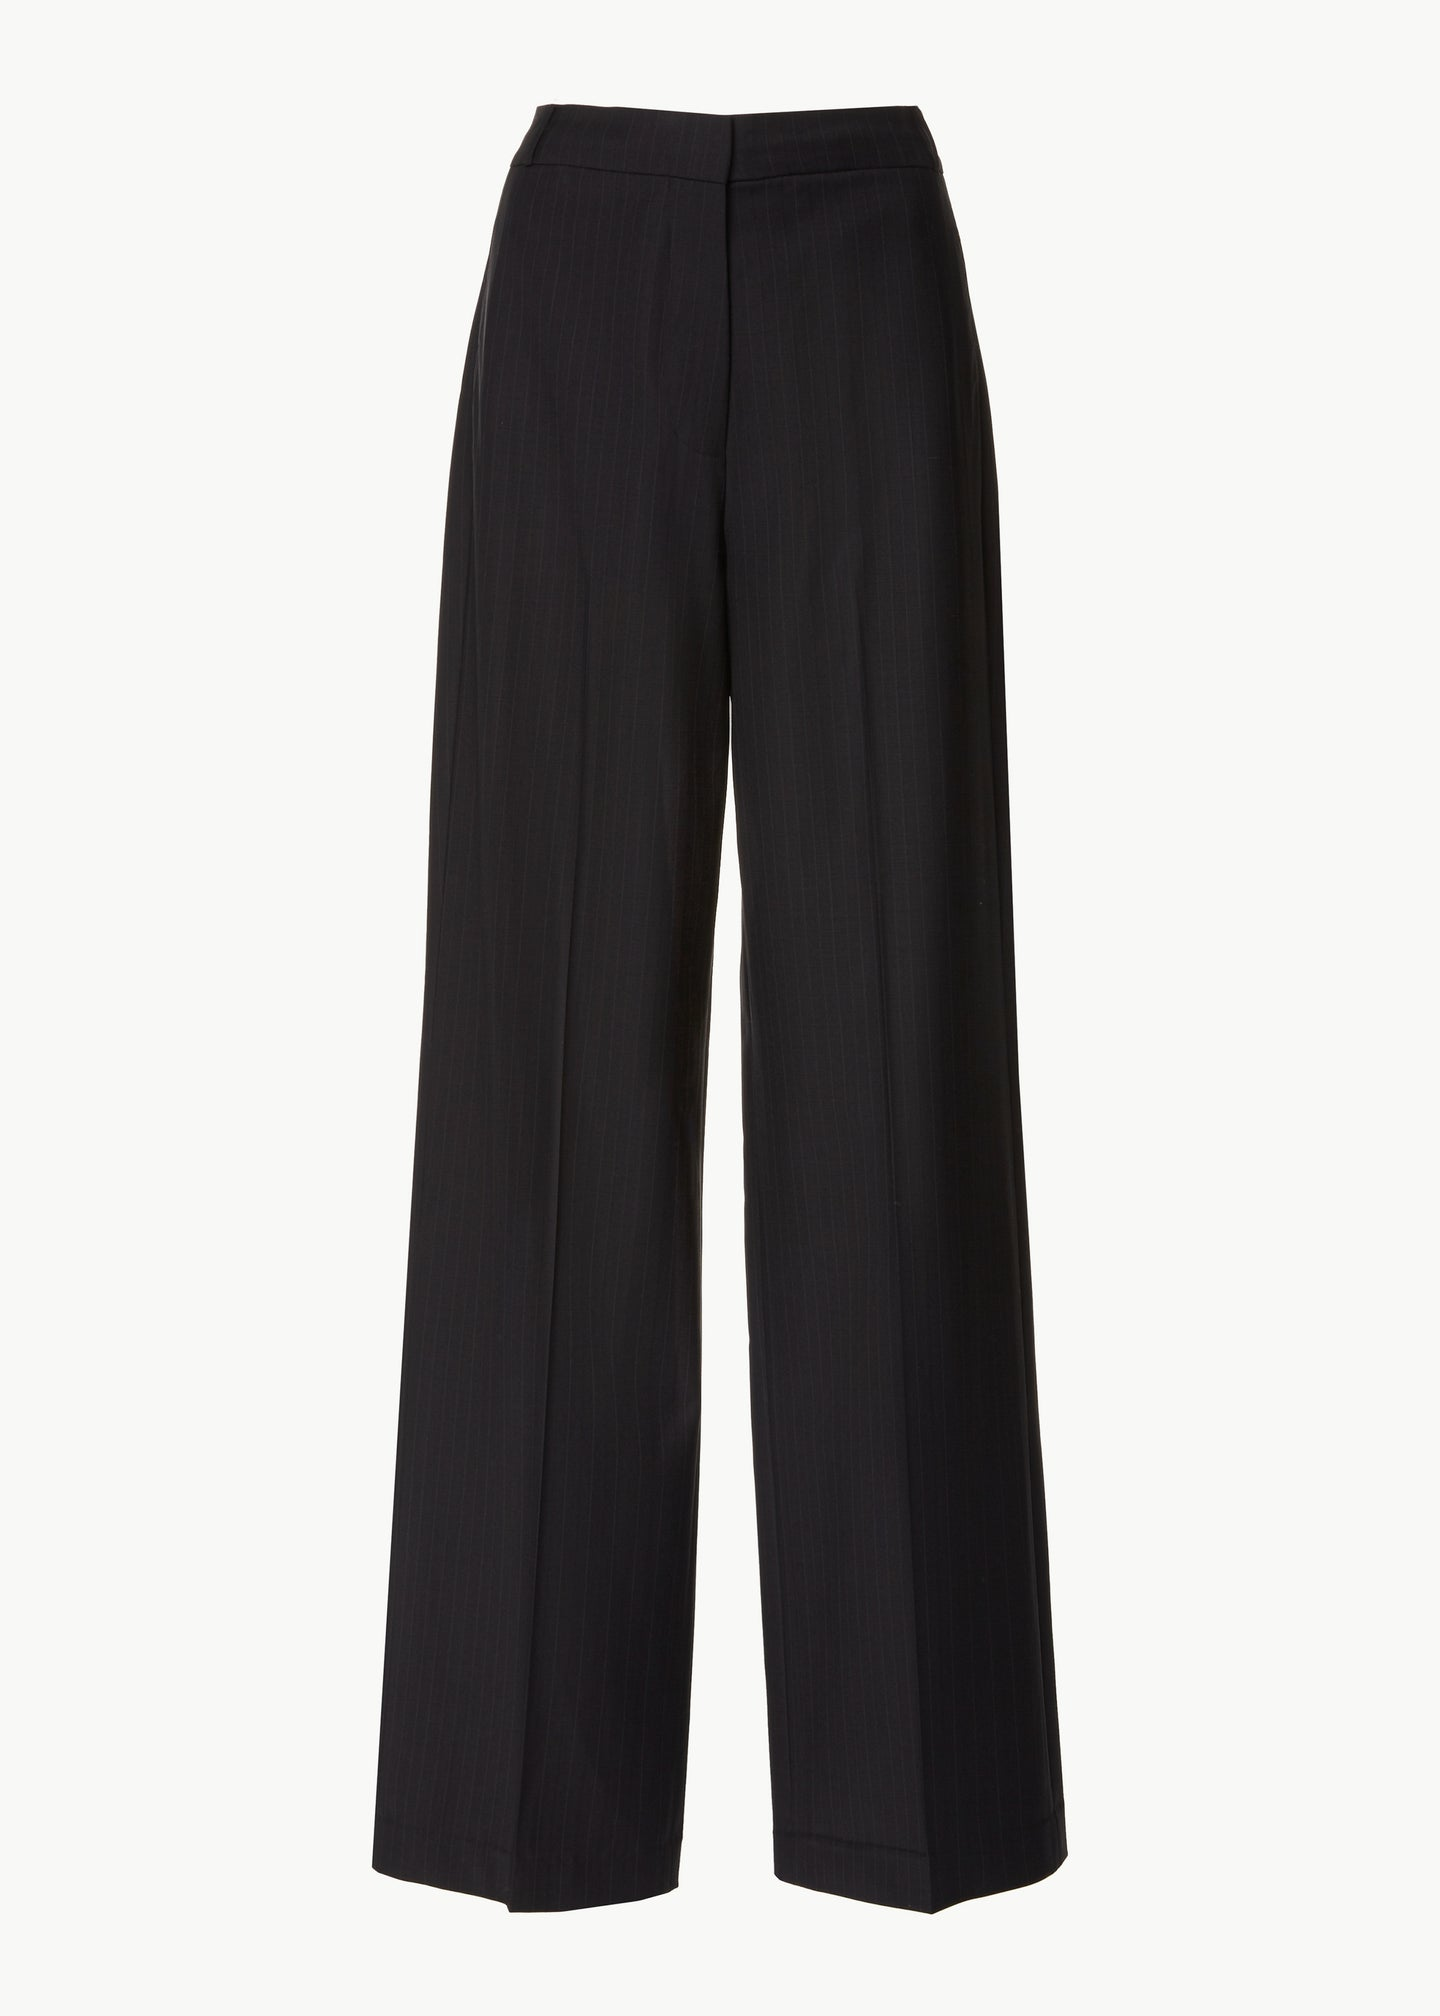 Straight Leg Trouser in Wool Pinstripe - Black - Co Collections